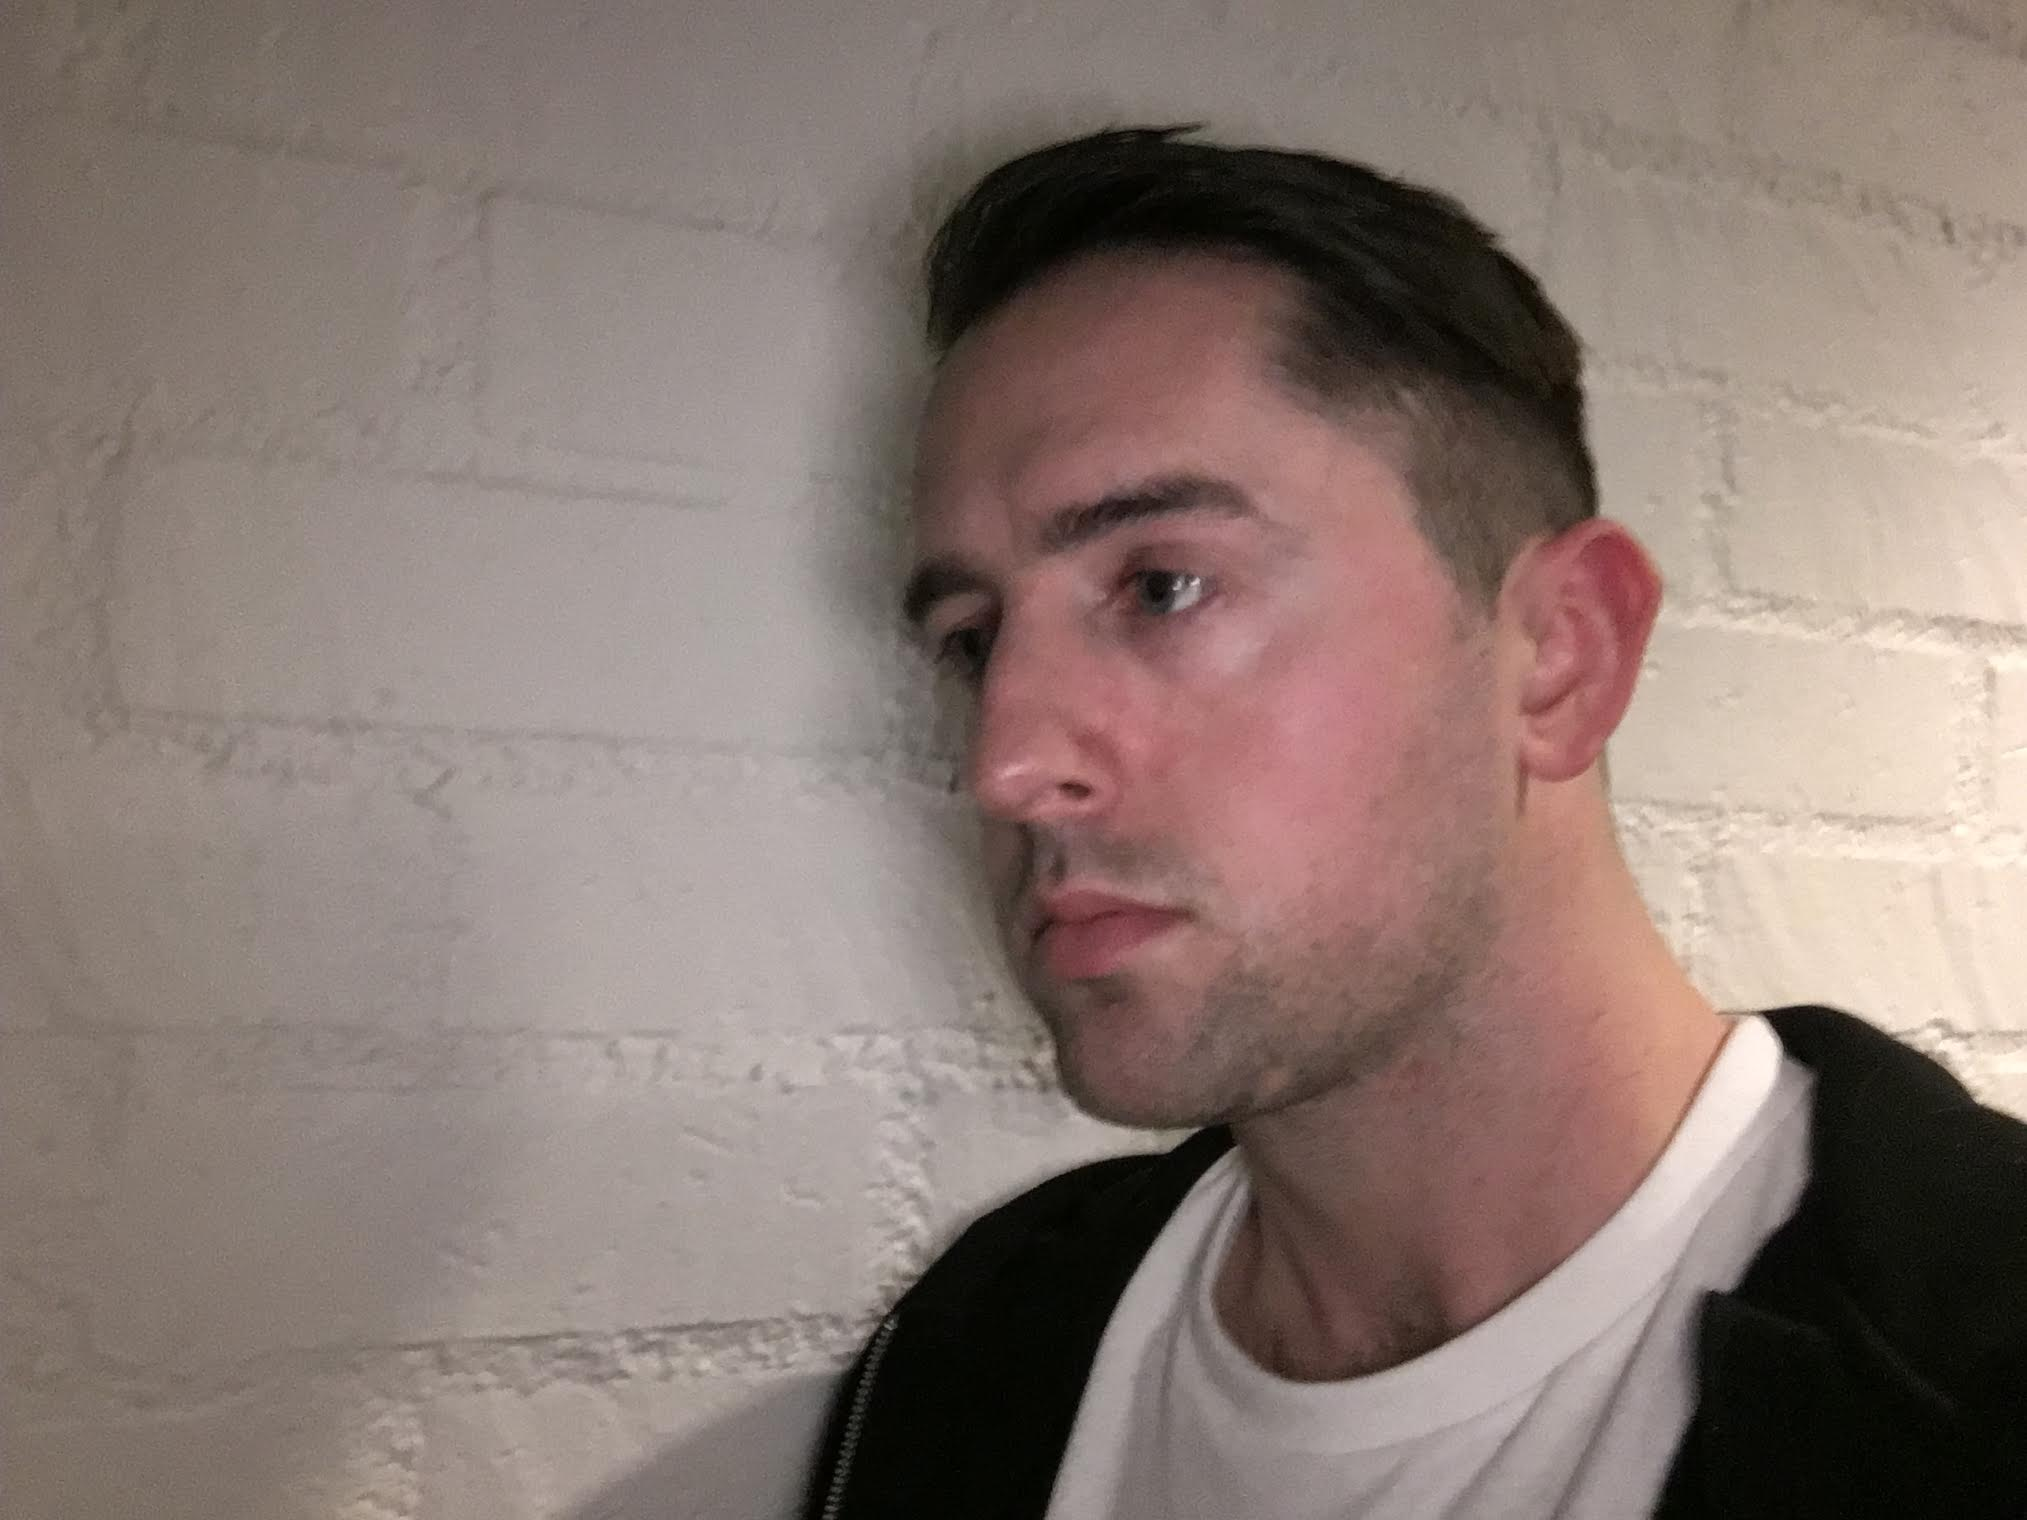 White Supremacists Do Not Own My Haircut Vice